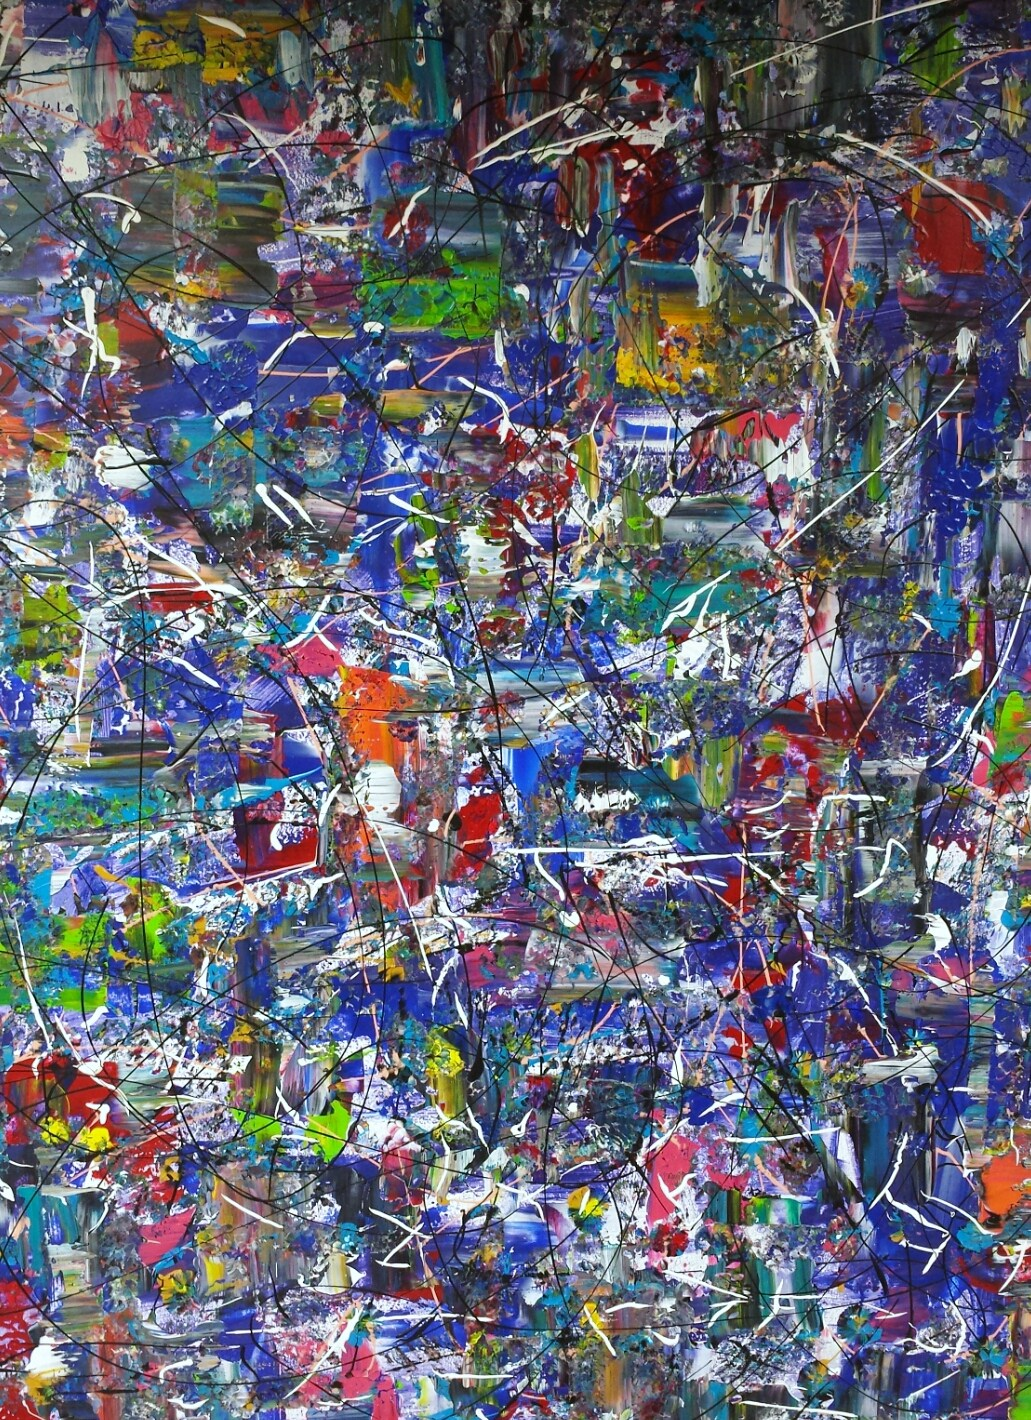 Rhapsody in Blue 1m30 x 1m50 - SOLD AT THE ART SQUARE EXPOSITION IN AMSTERDAM, TO A BRASILIAN LAWYER.